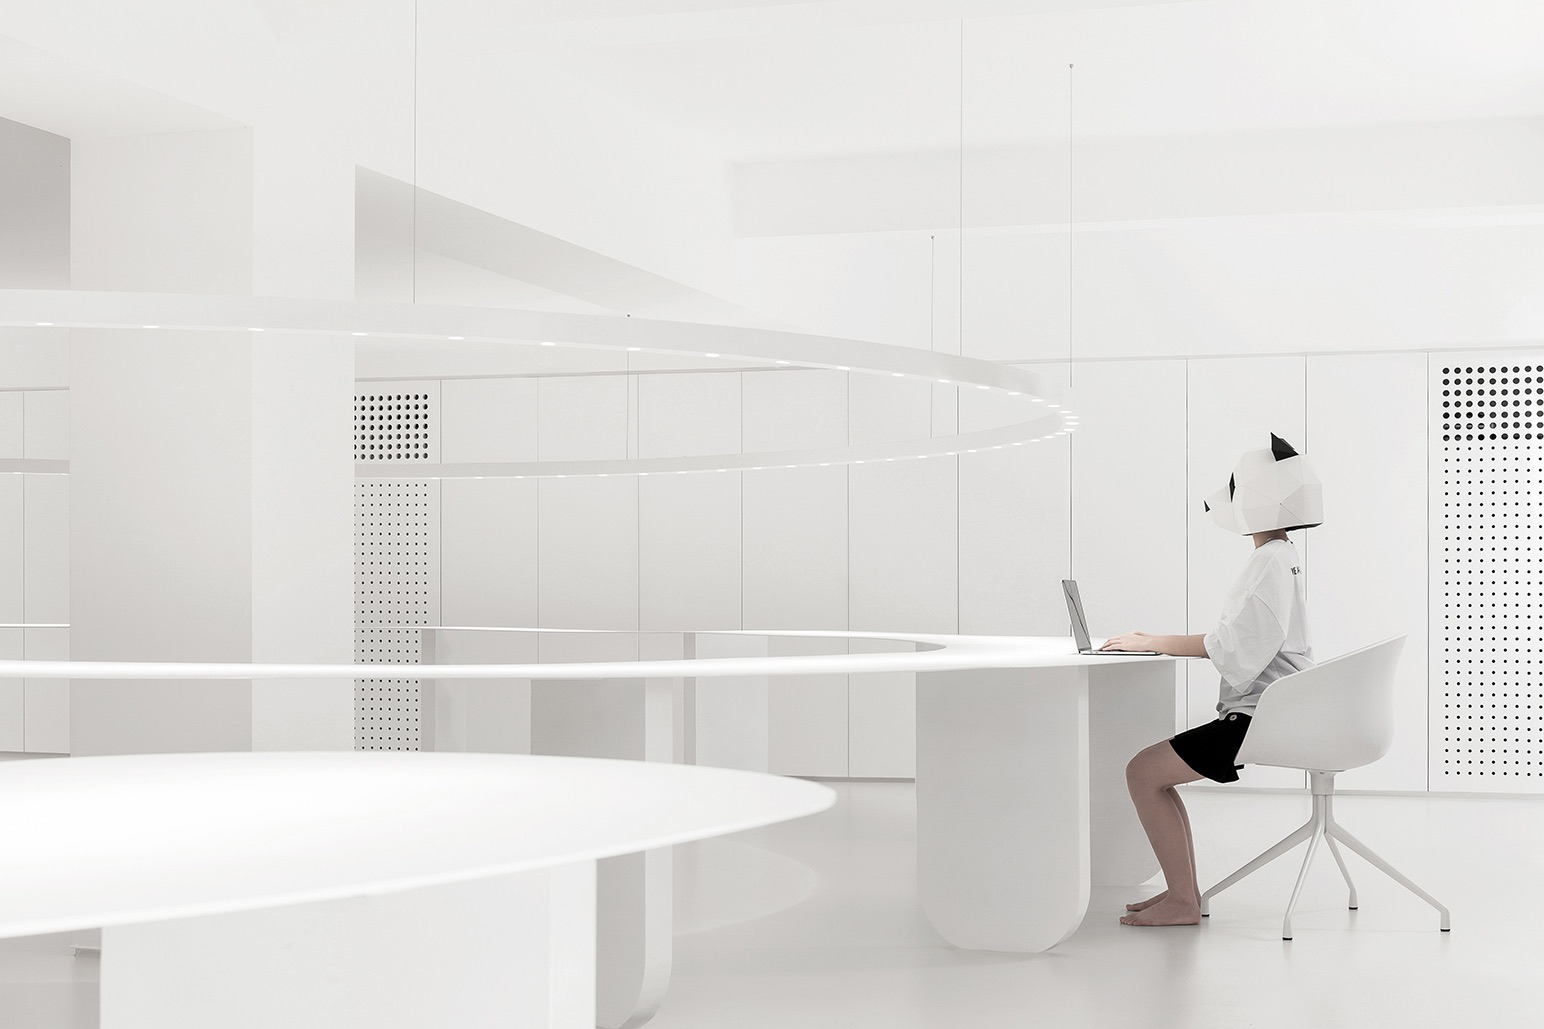 panda-design-office-xiamen-4